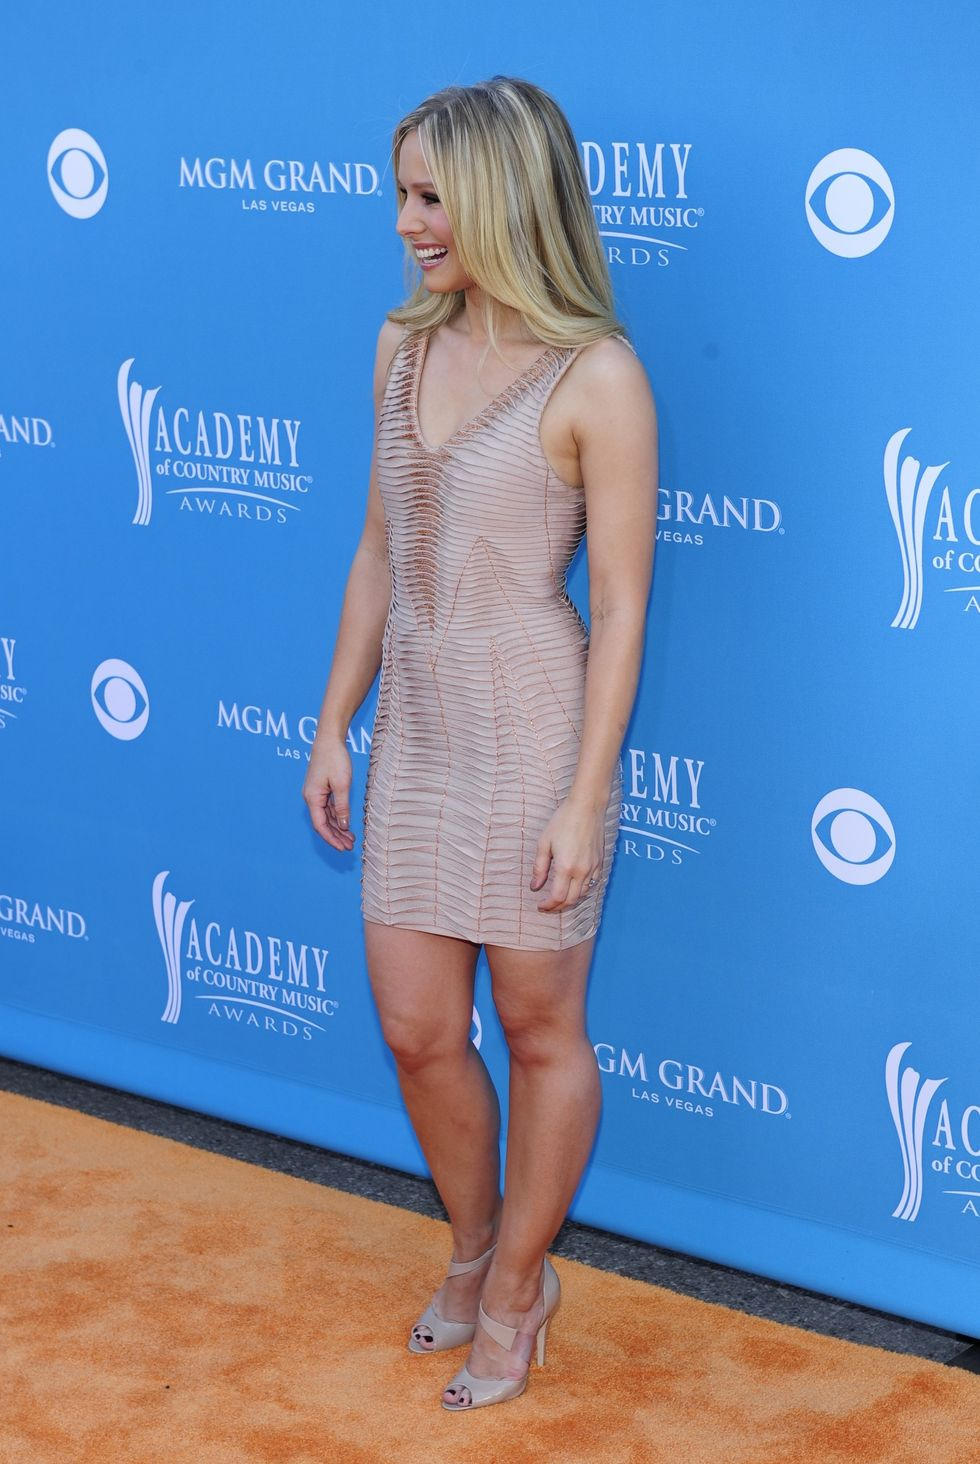 Kristen Bell 2010 : kristen-bell-at-45th-annual-academy-of-country-music-awards-10